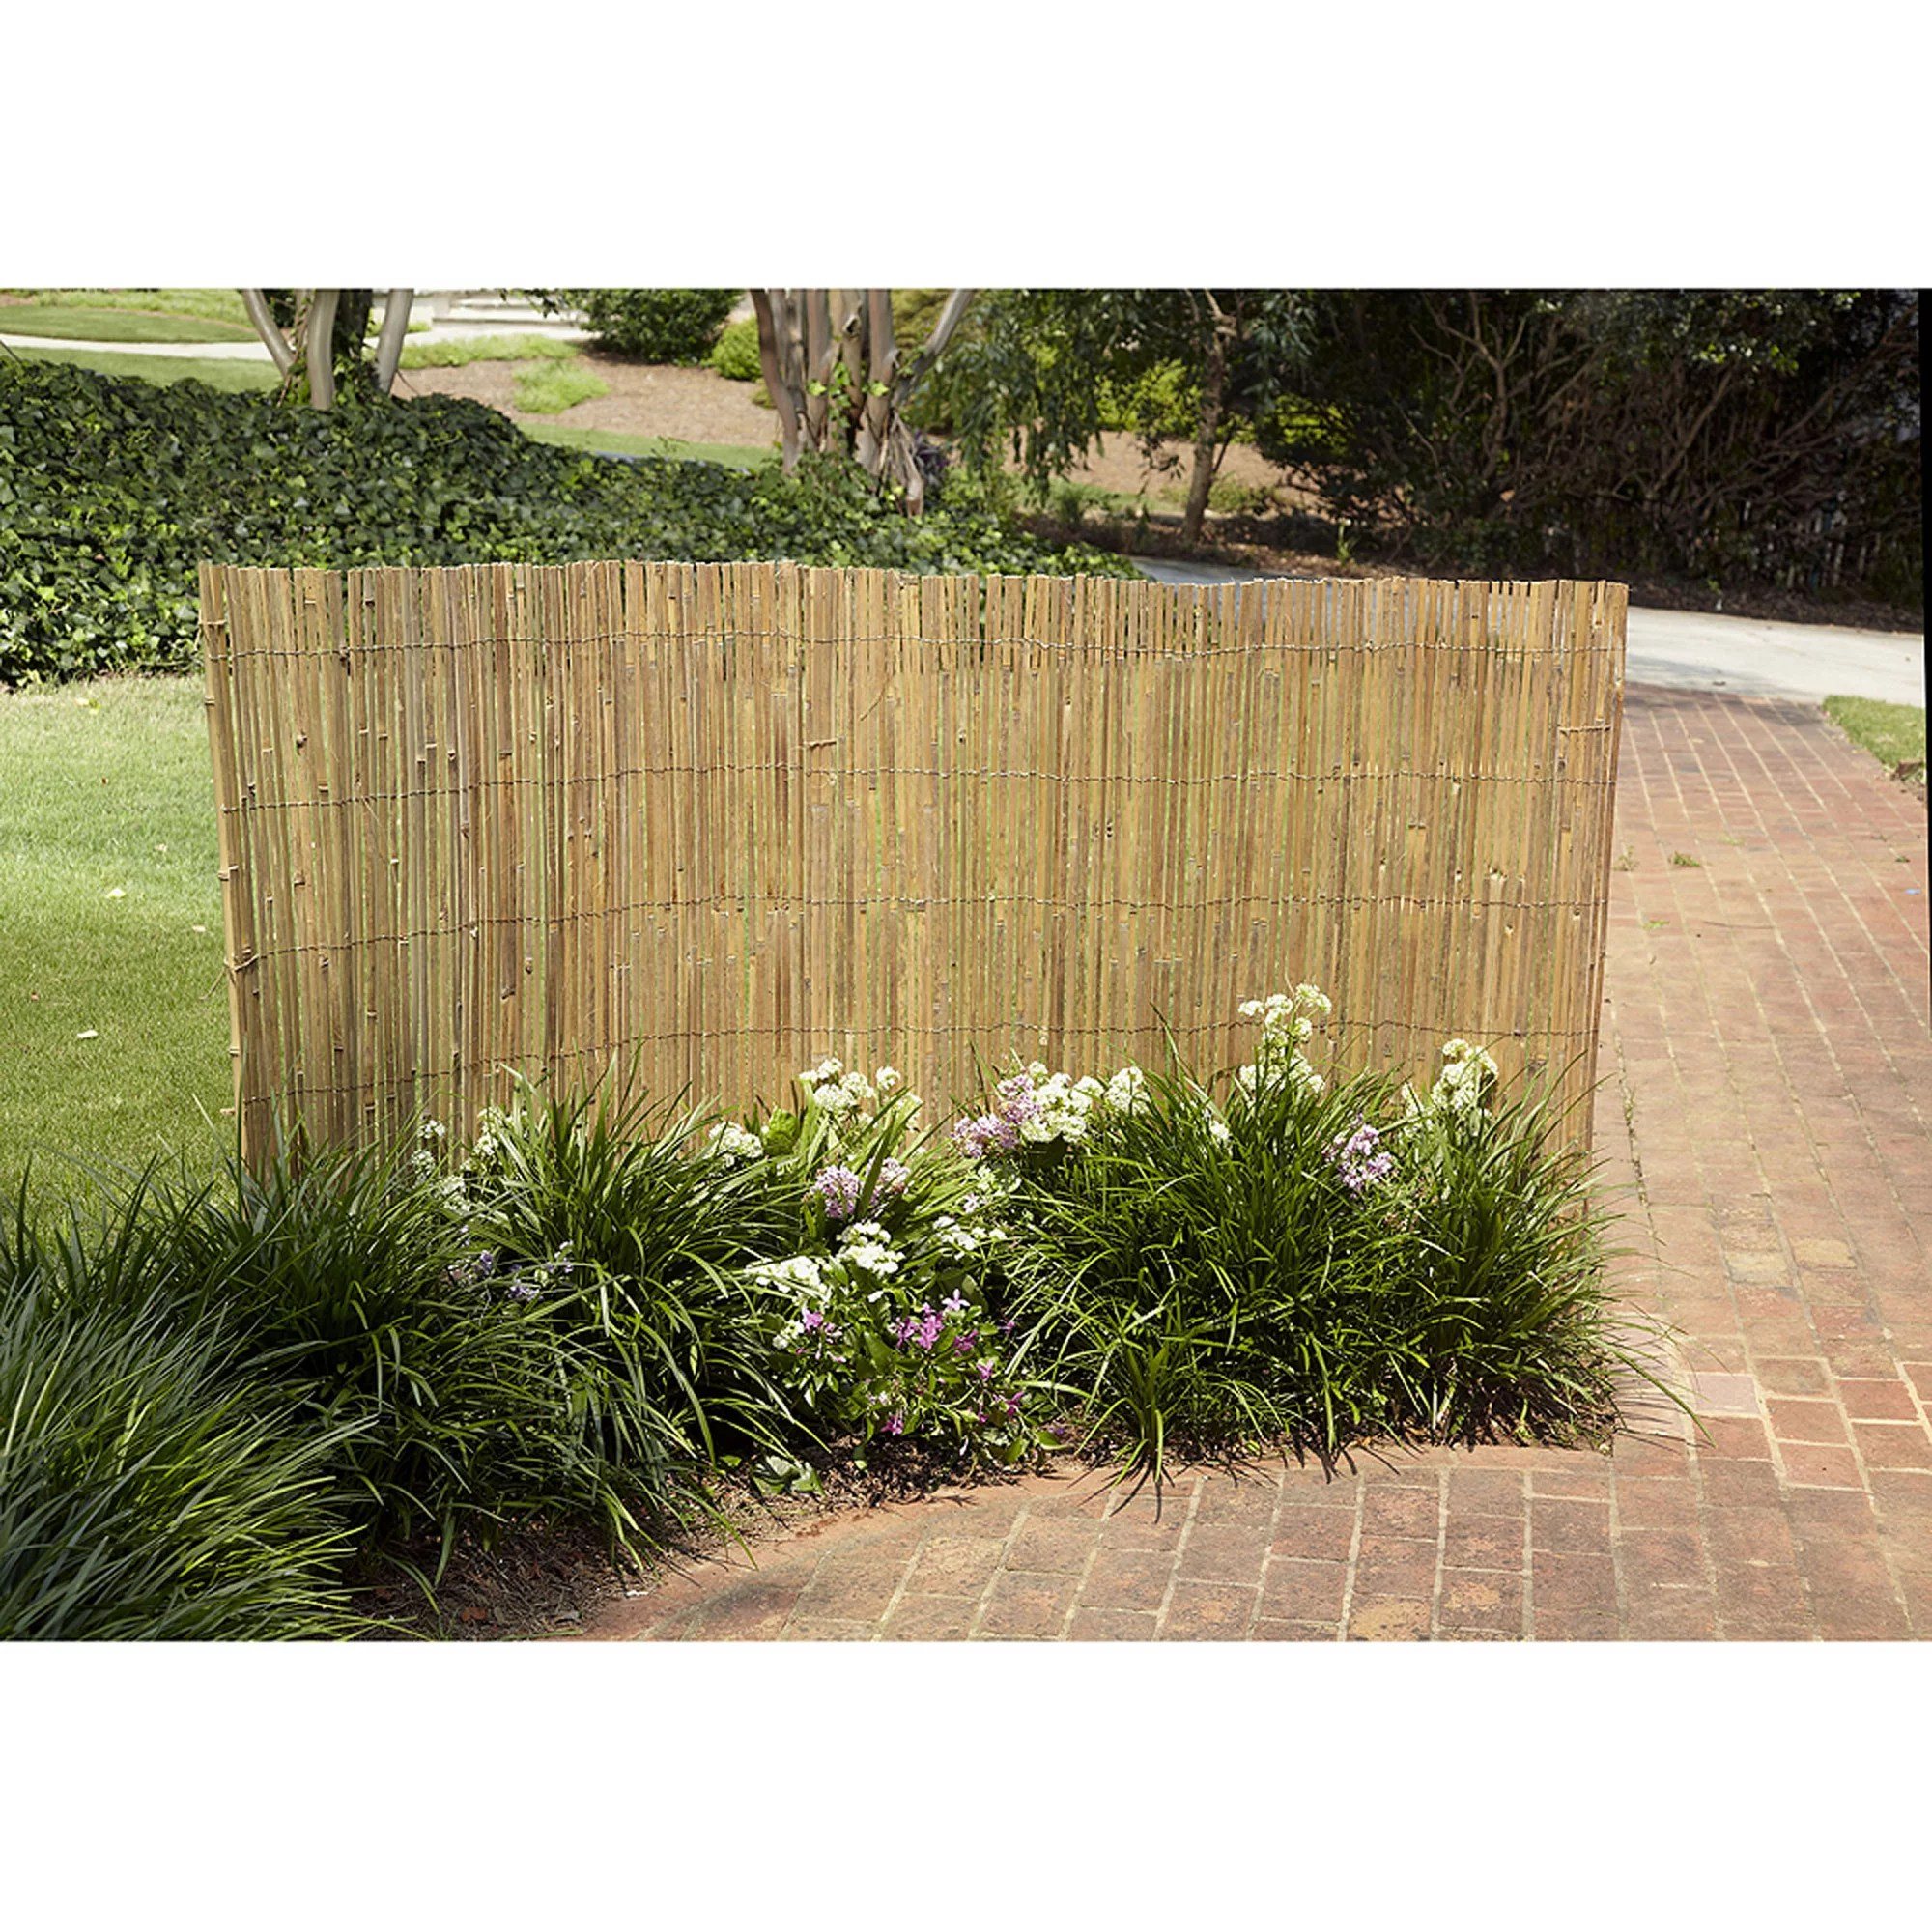 Bamboo Fence Canada Gardenpath 1 2 In Outside Peel Bamboo Fence 4 Ft H X 8 Ft L